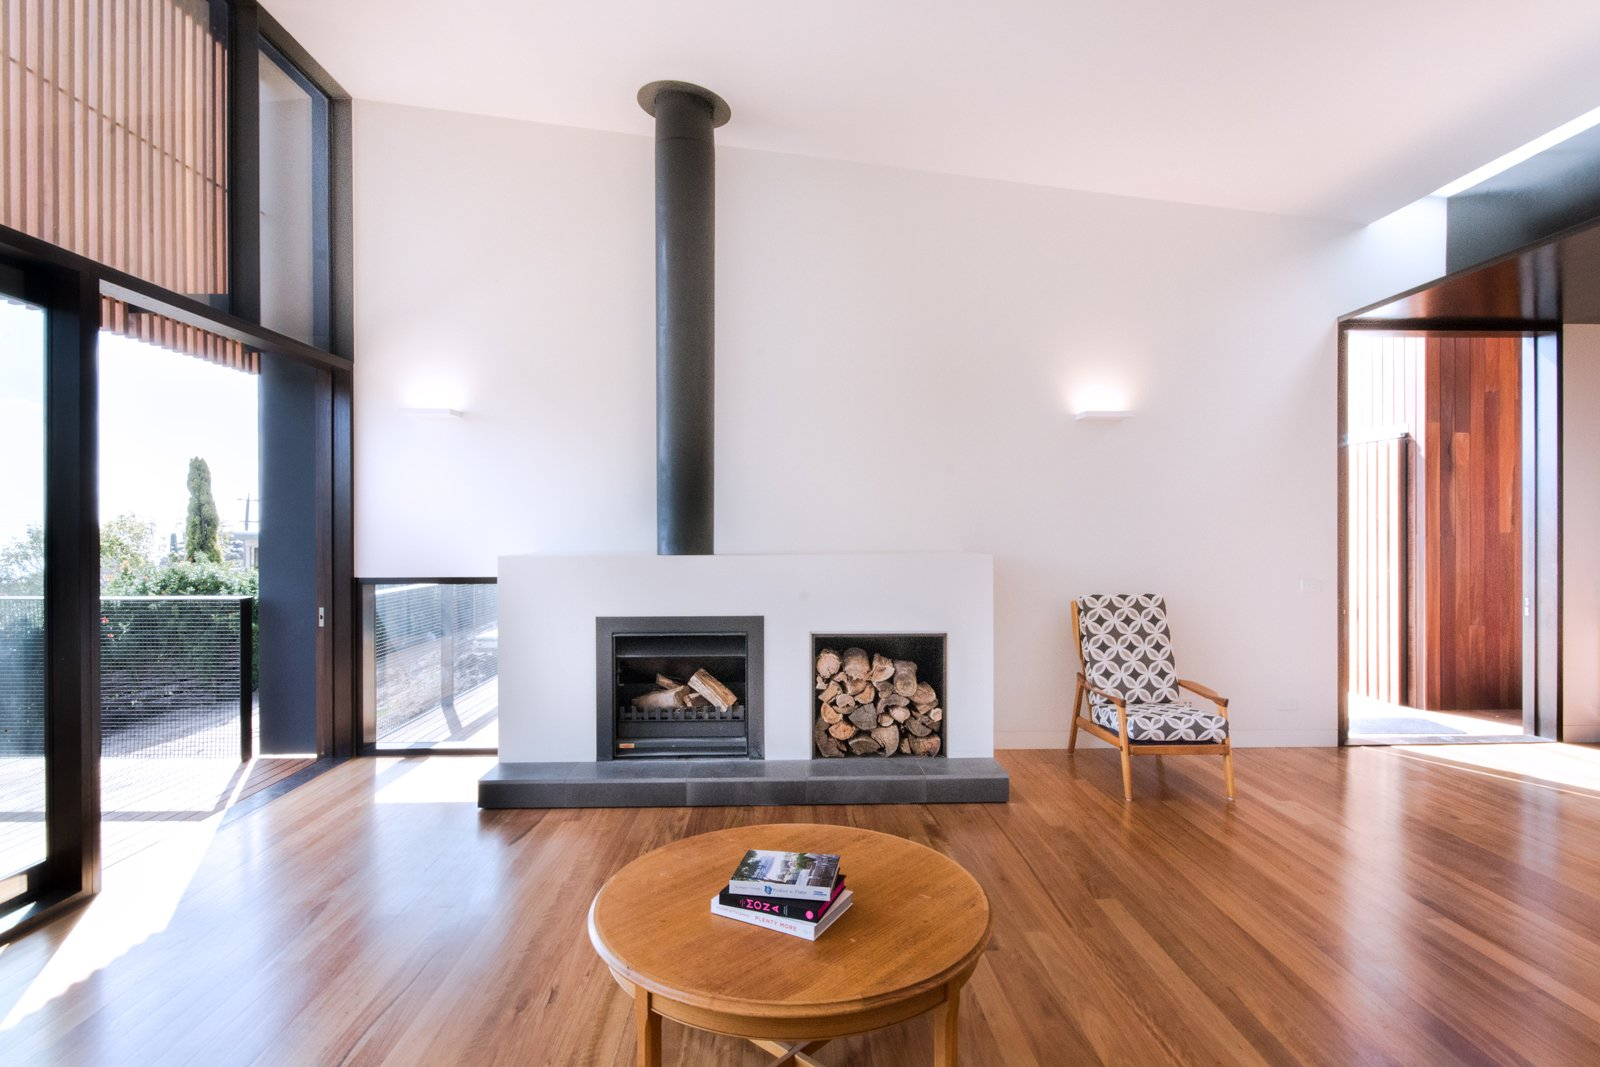 Immediately to the right of the entry is the main living space, which features a Jetmaster 700D wood-burning fireplace. Tagged: Living Room, Wood Burning Fireplace, Standard Layout Fireplace, Medium Hardwood Floor, Chair, Coffee Tables, and Wall Lighting.  Lounge by Jim Tattersall from Martha